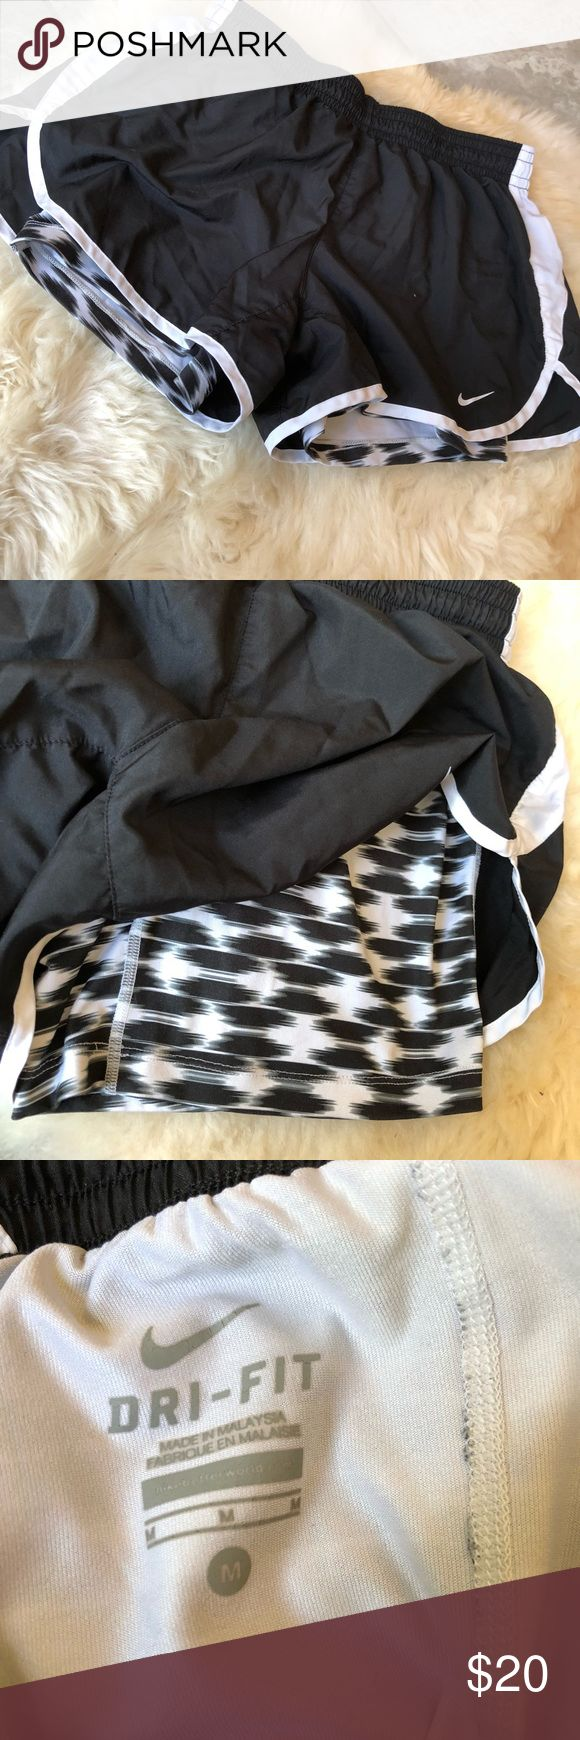 Nike dri-fit workout shorts with bike shorts •Only worn a few times!! In amazi...